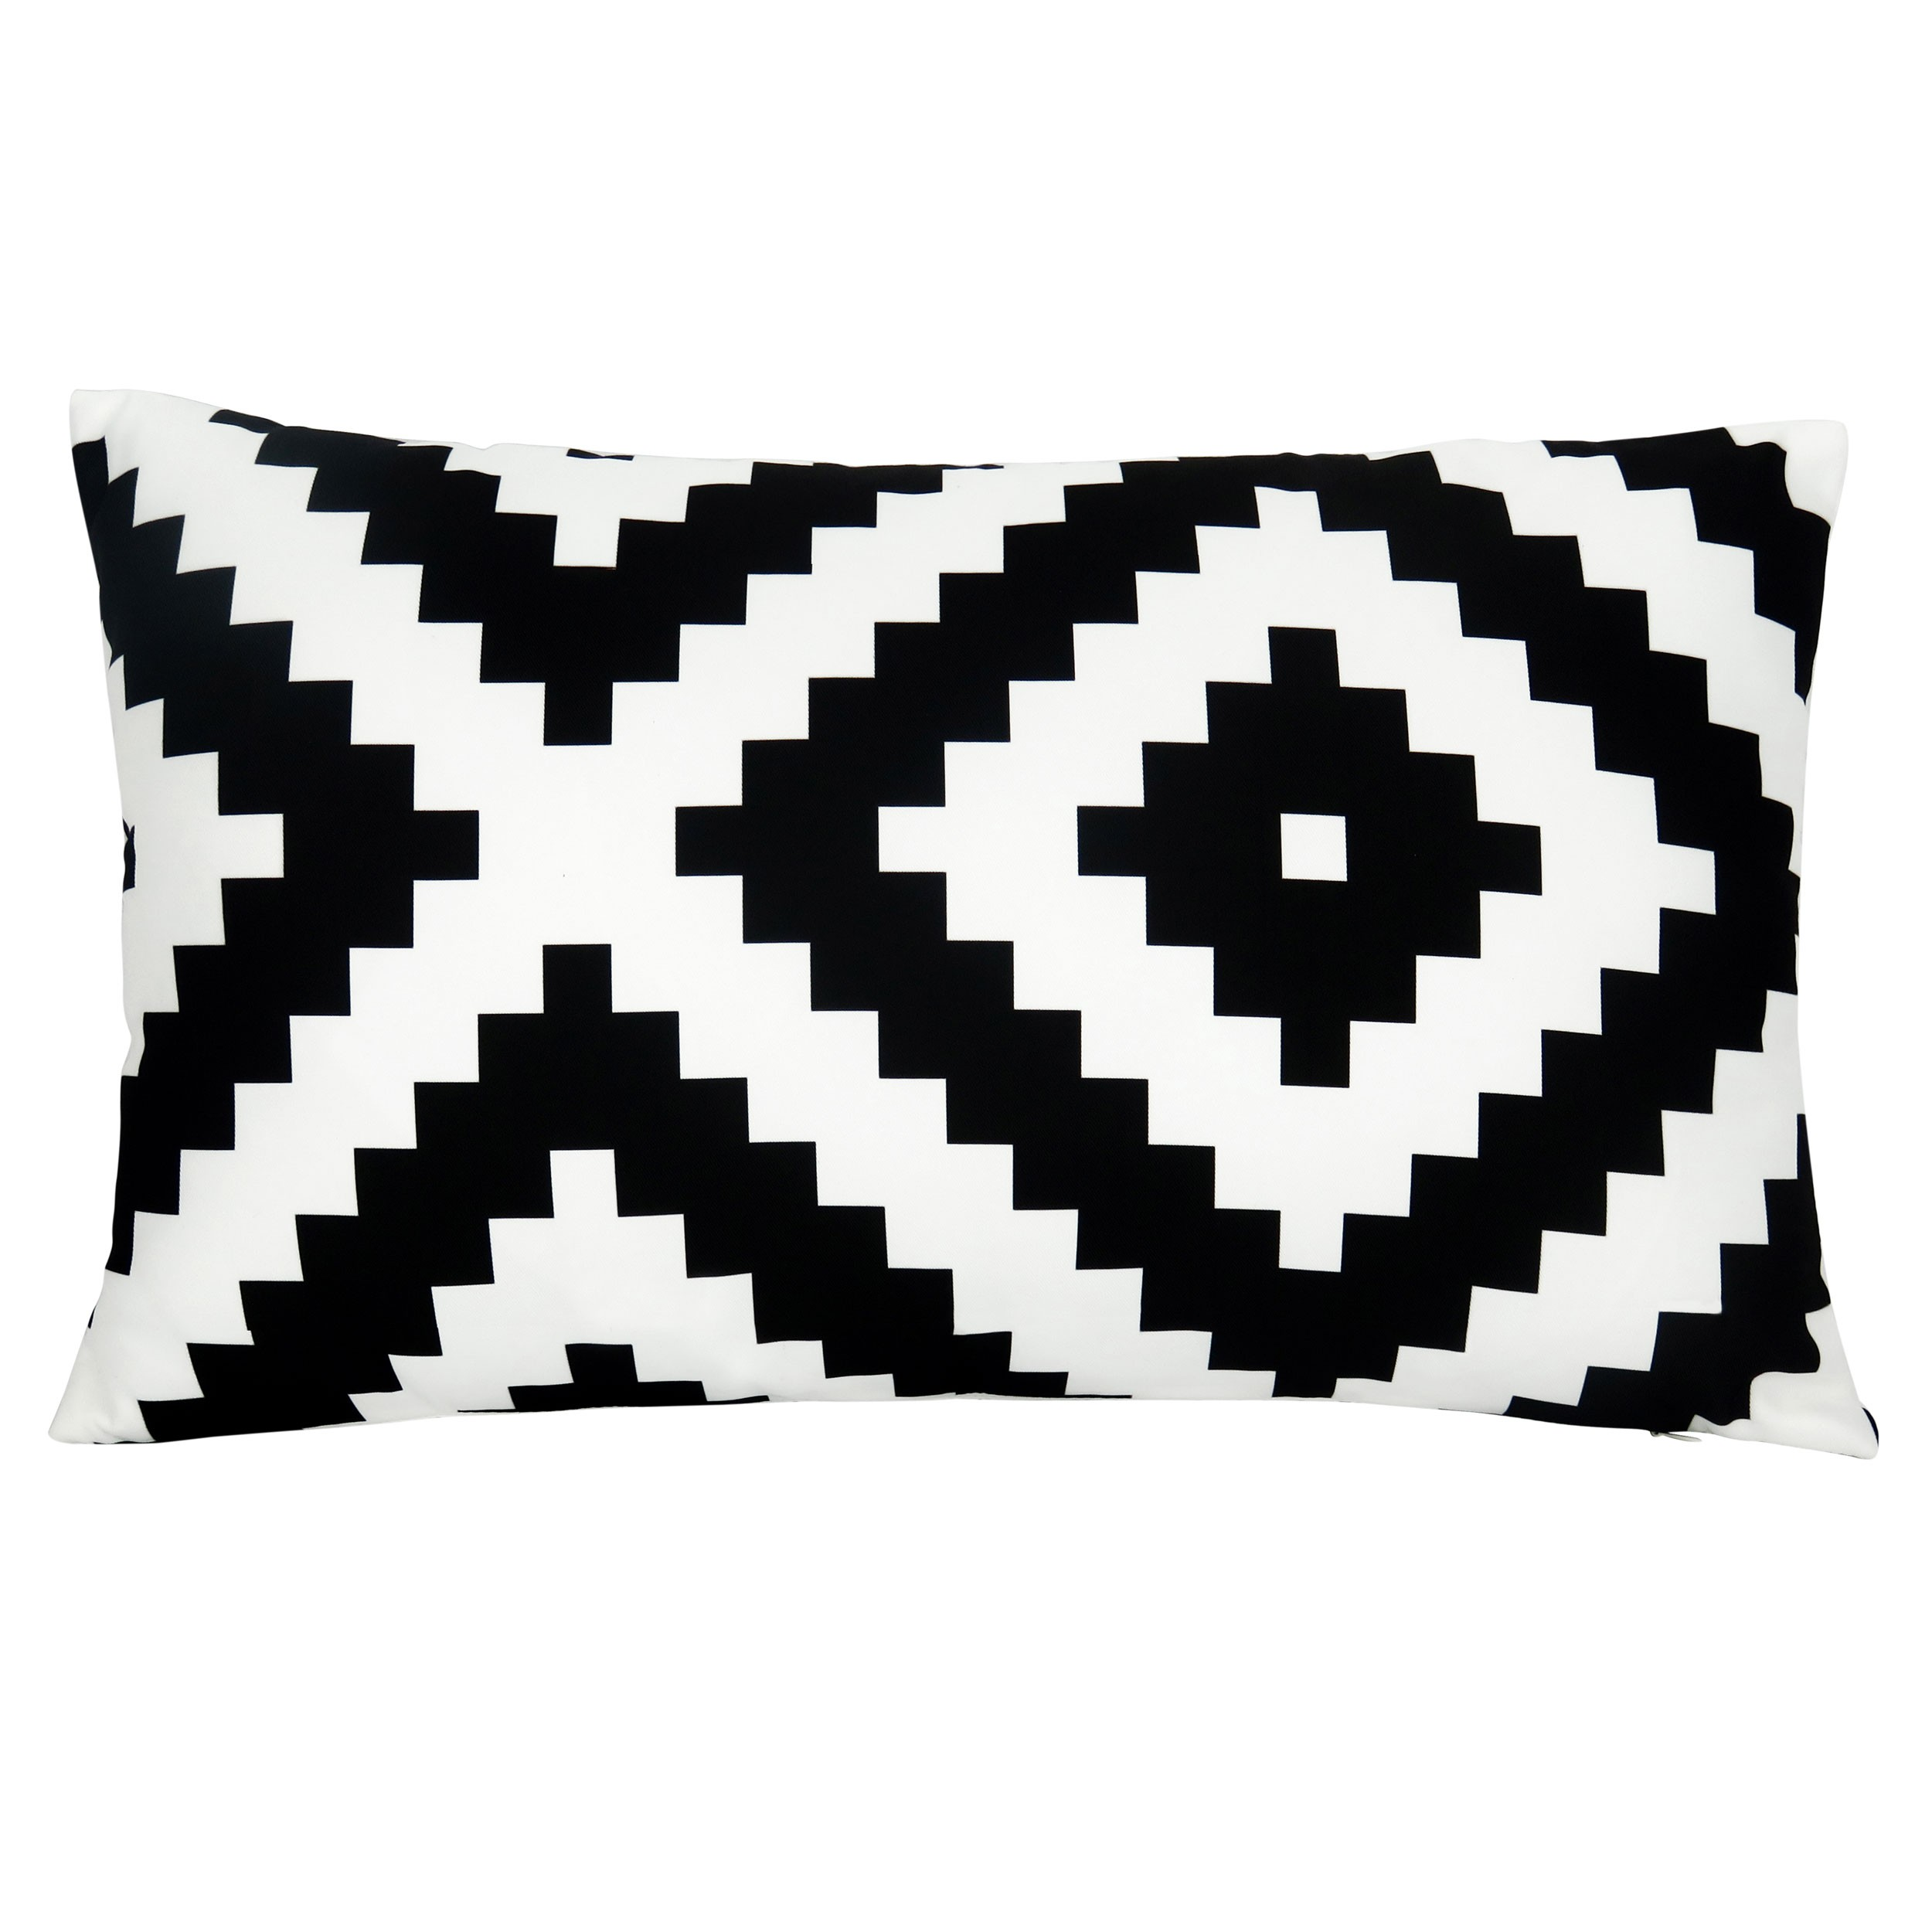 Coussin Black and white : choisissez les